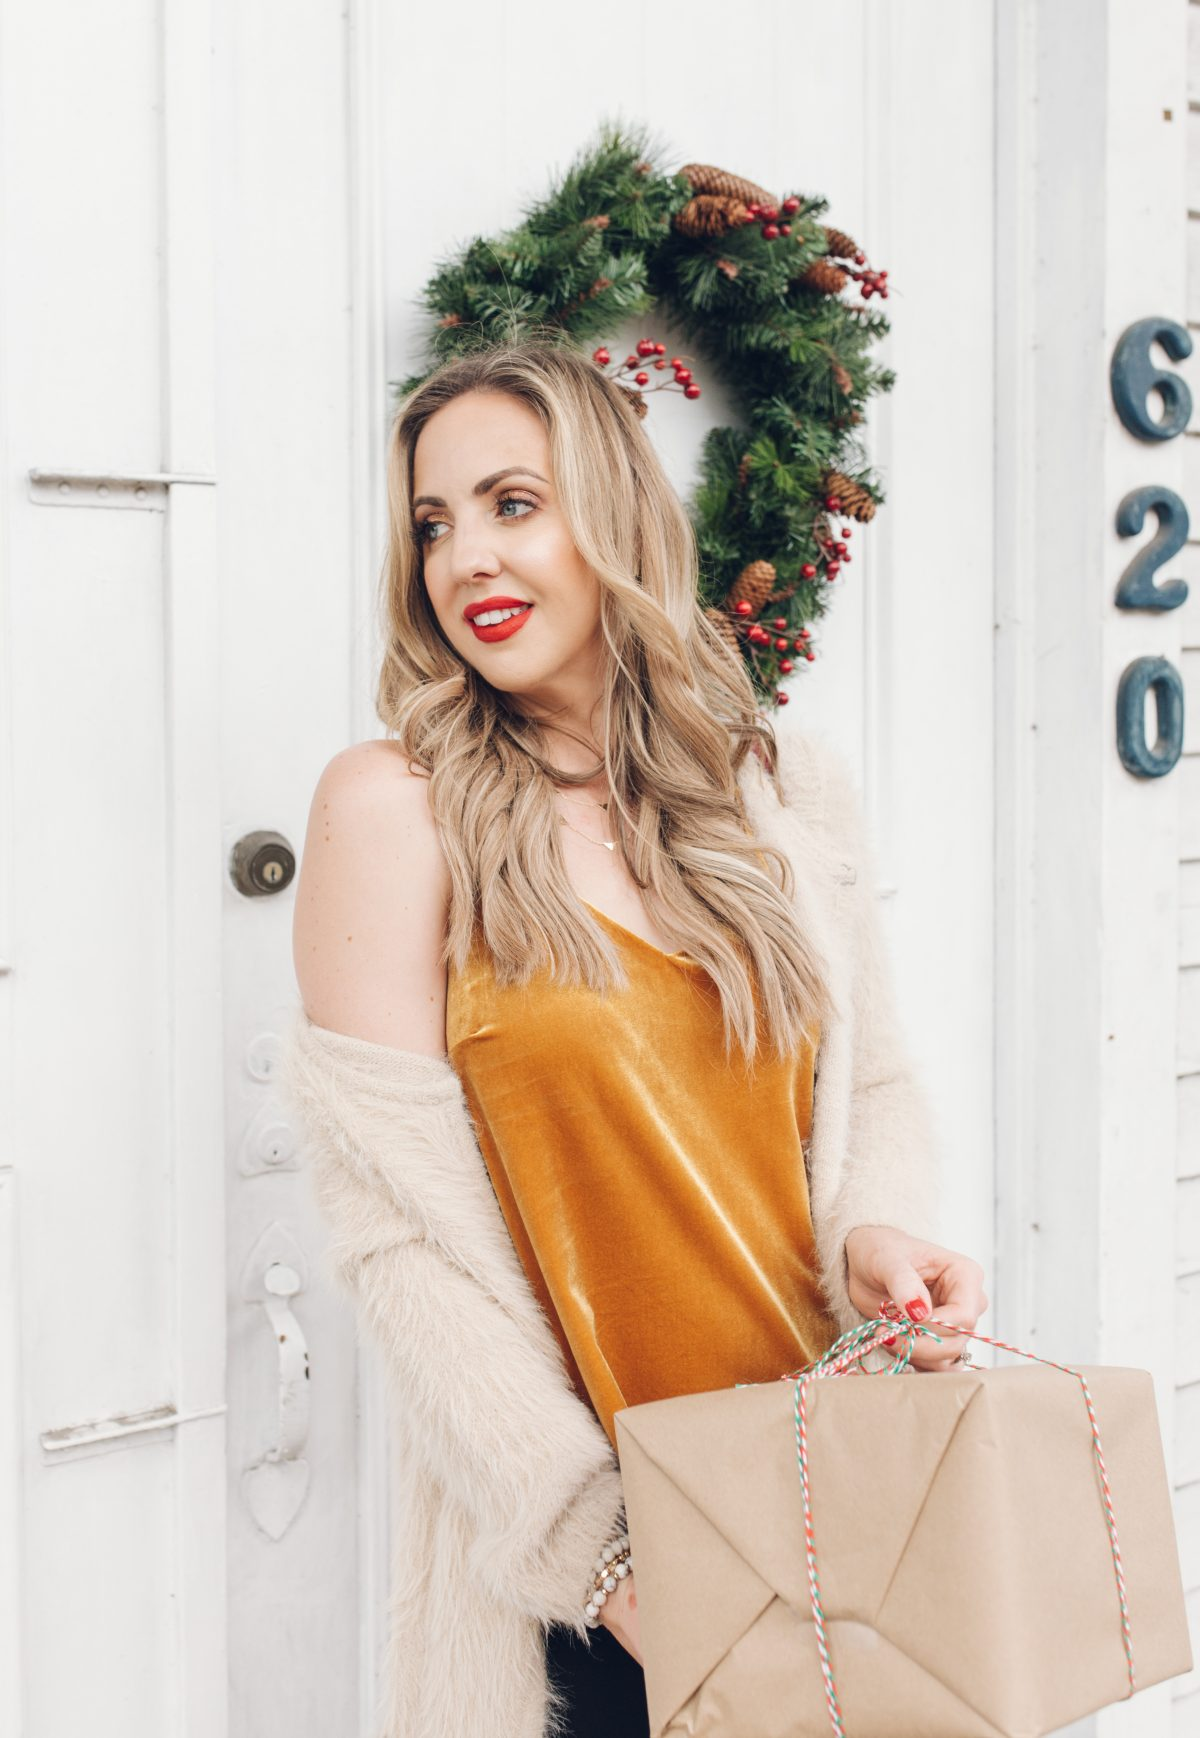 Houston lifestyle blogger Meg O. on the Go shares the importance of doing the holidays your way, and sharing two holiday looks from Evereve